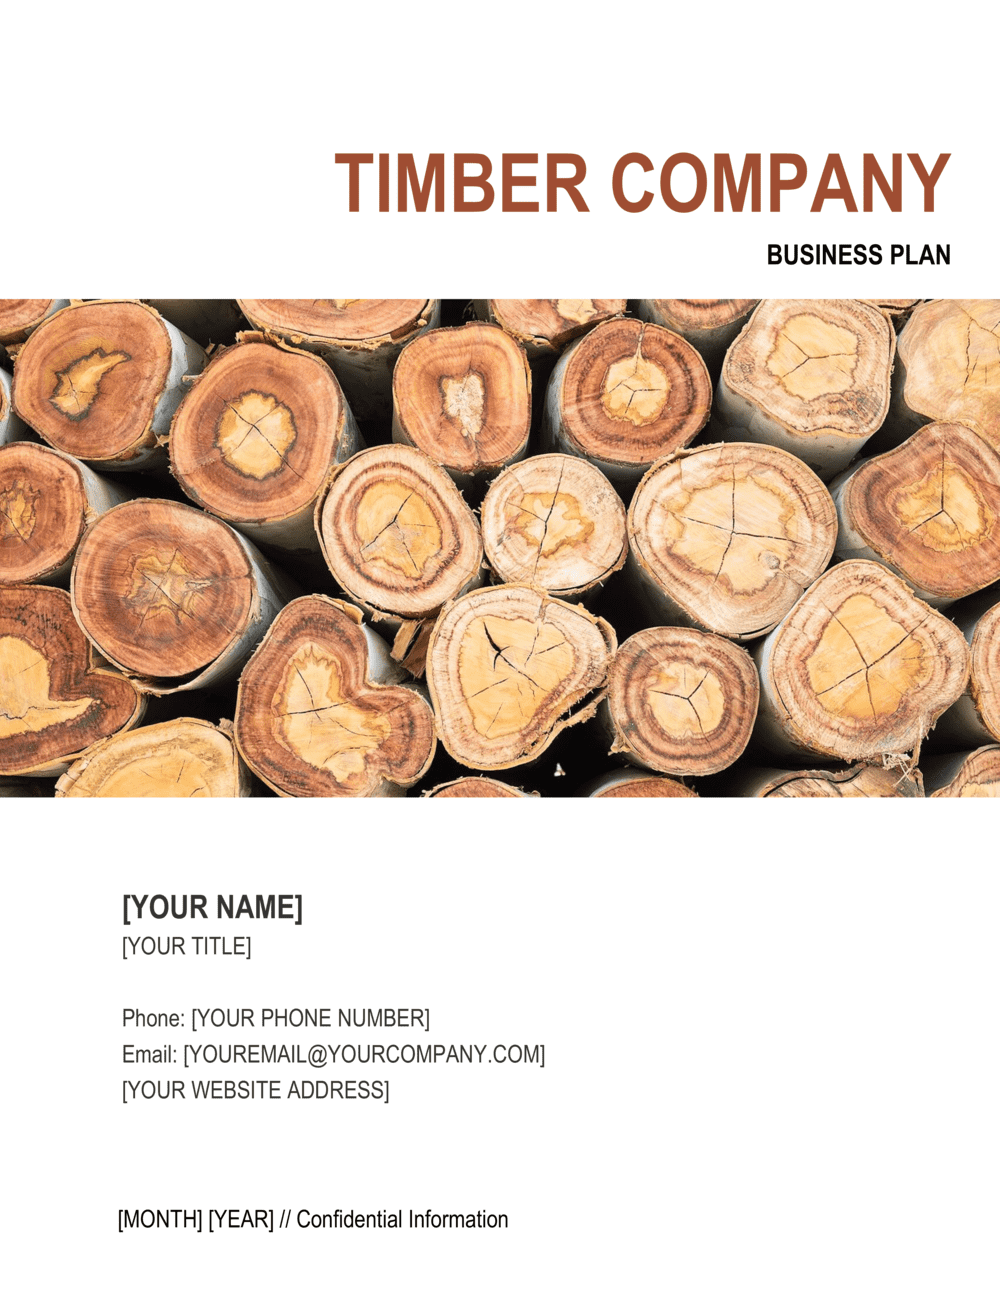 Business-in-a-Box's Timber Company Business Plan Template